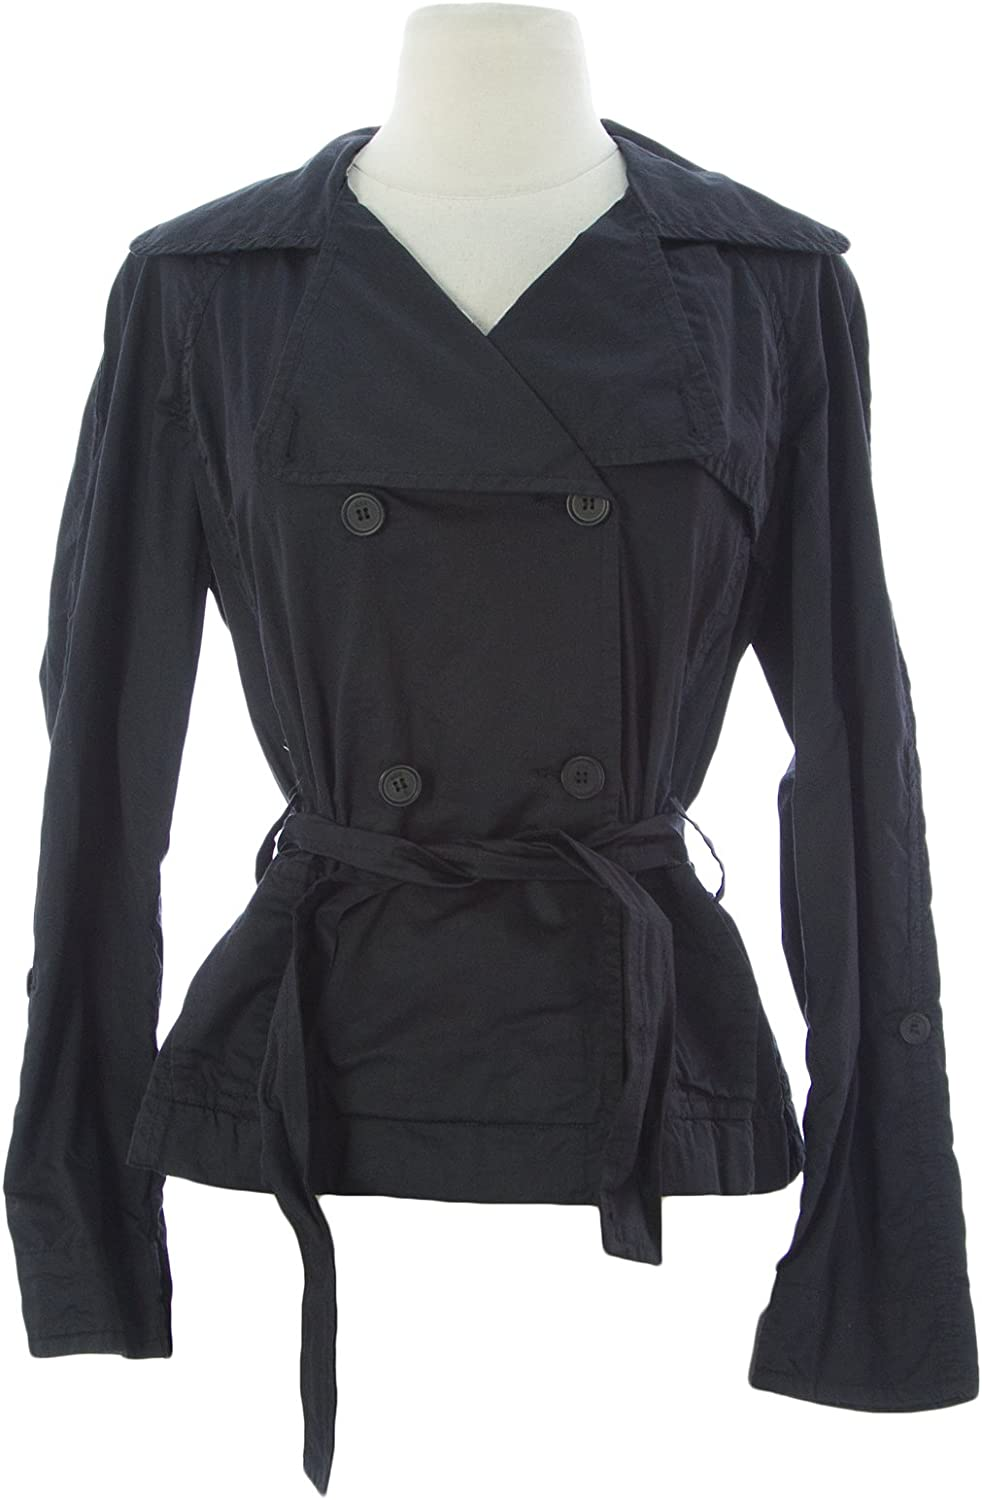 ADD Women's Belted Double Breasted Jacket Black